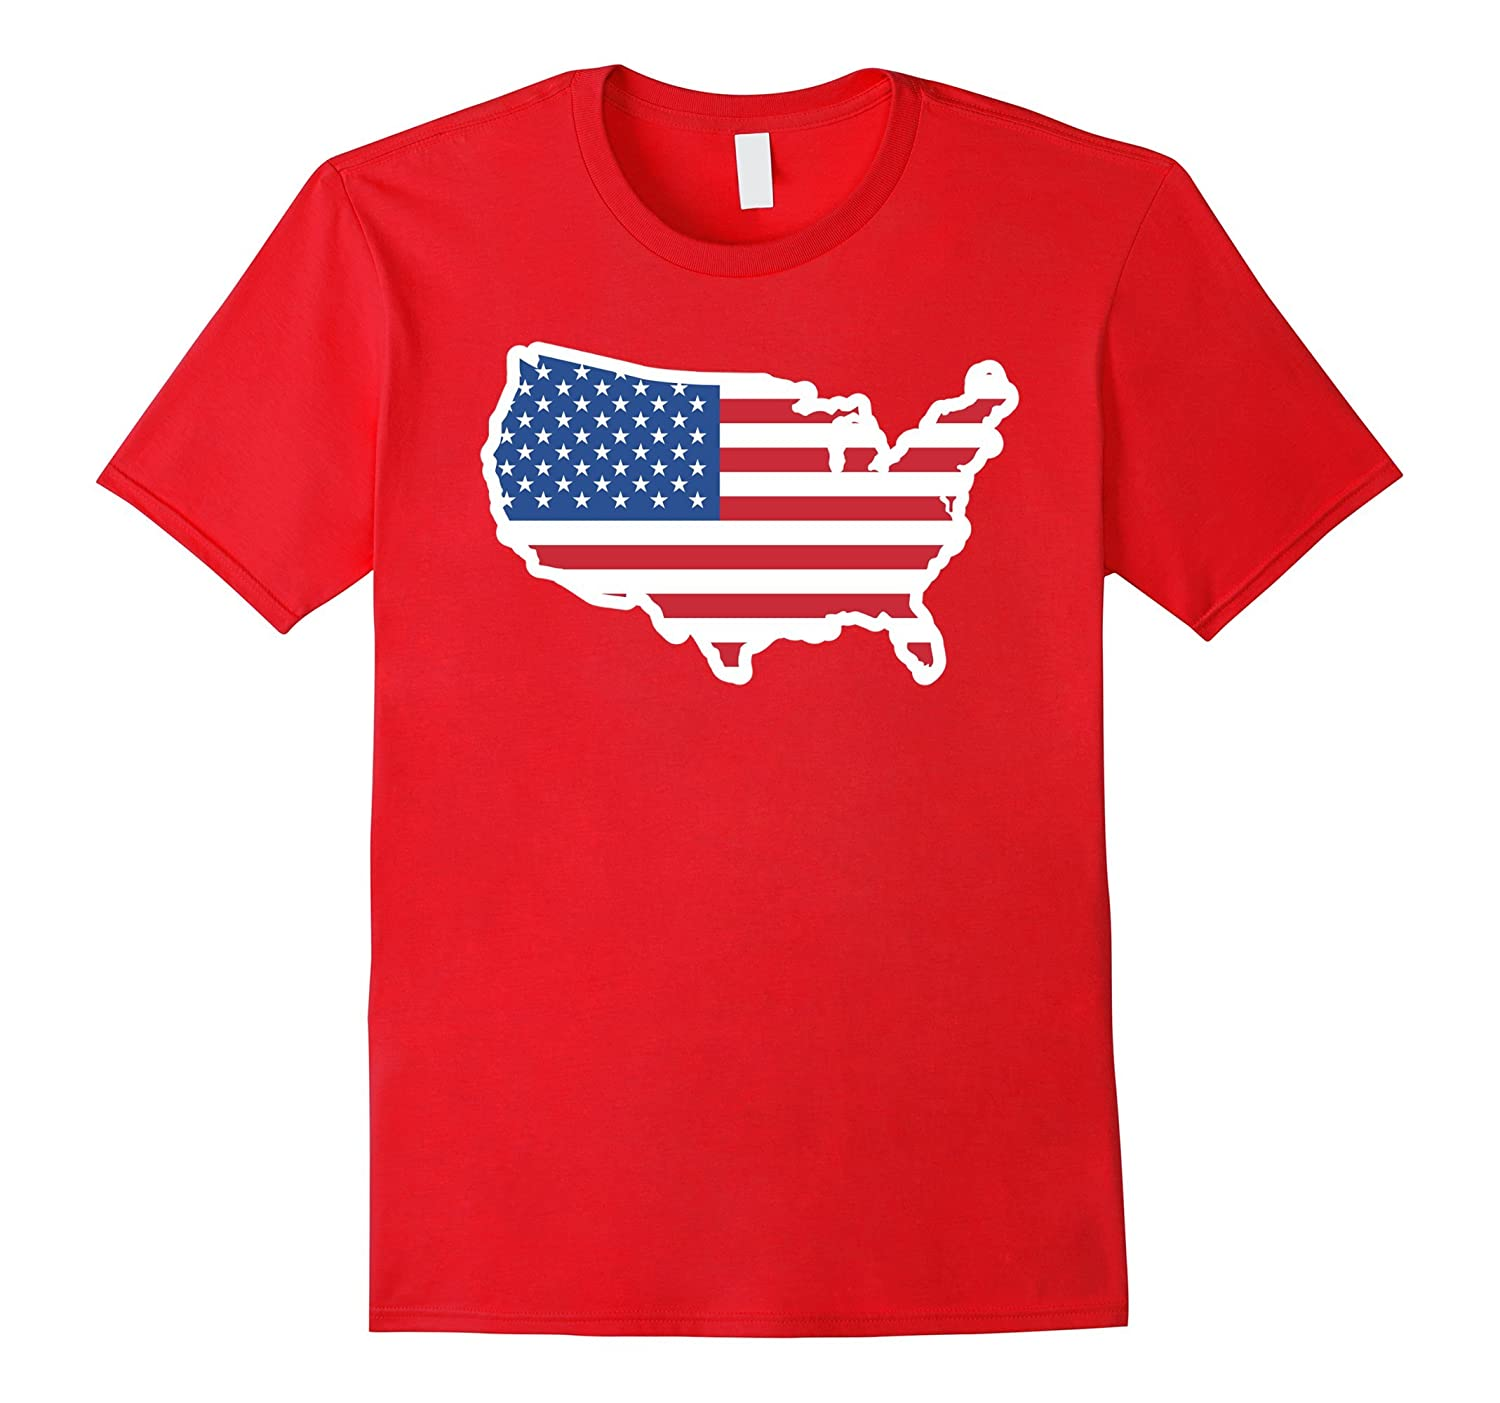 USA Map Flag T-Shirt United States of America-CL – Colamaga